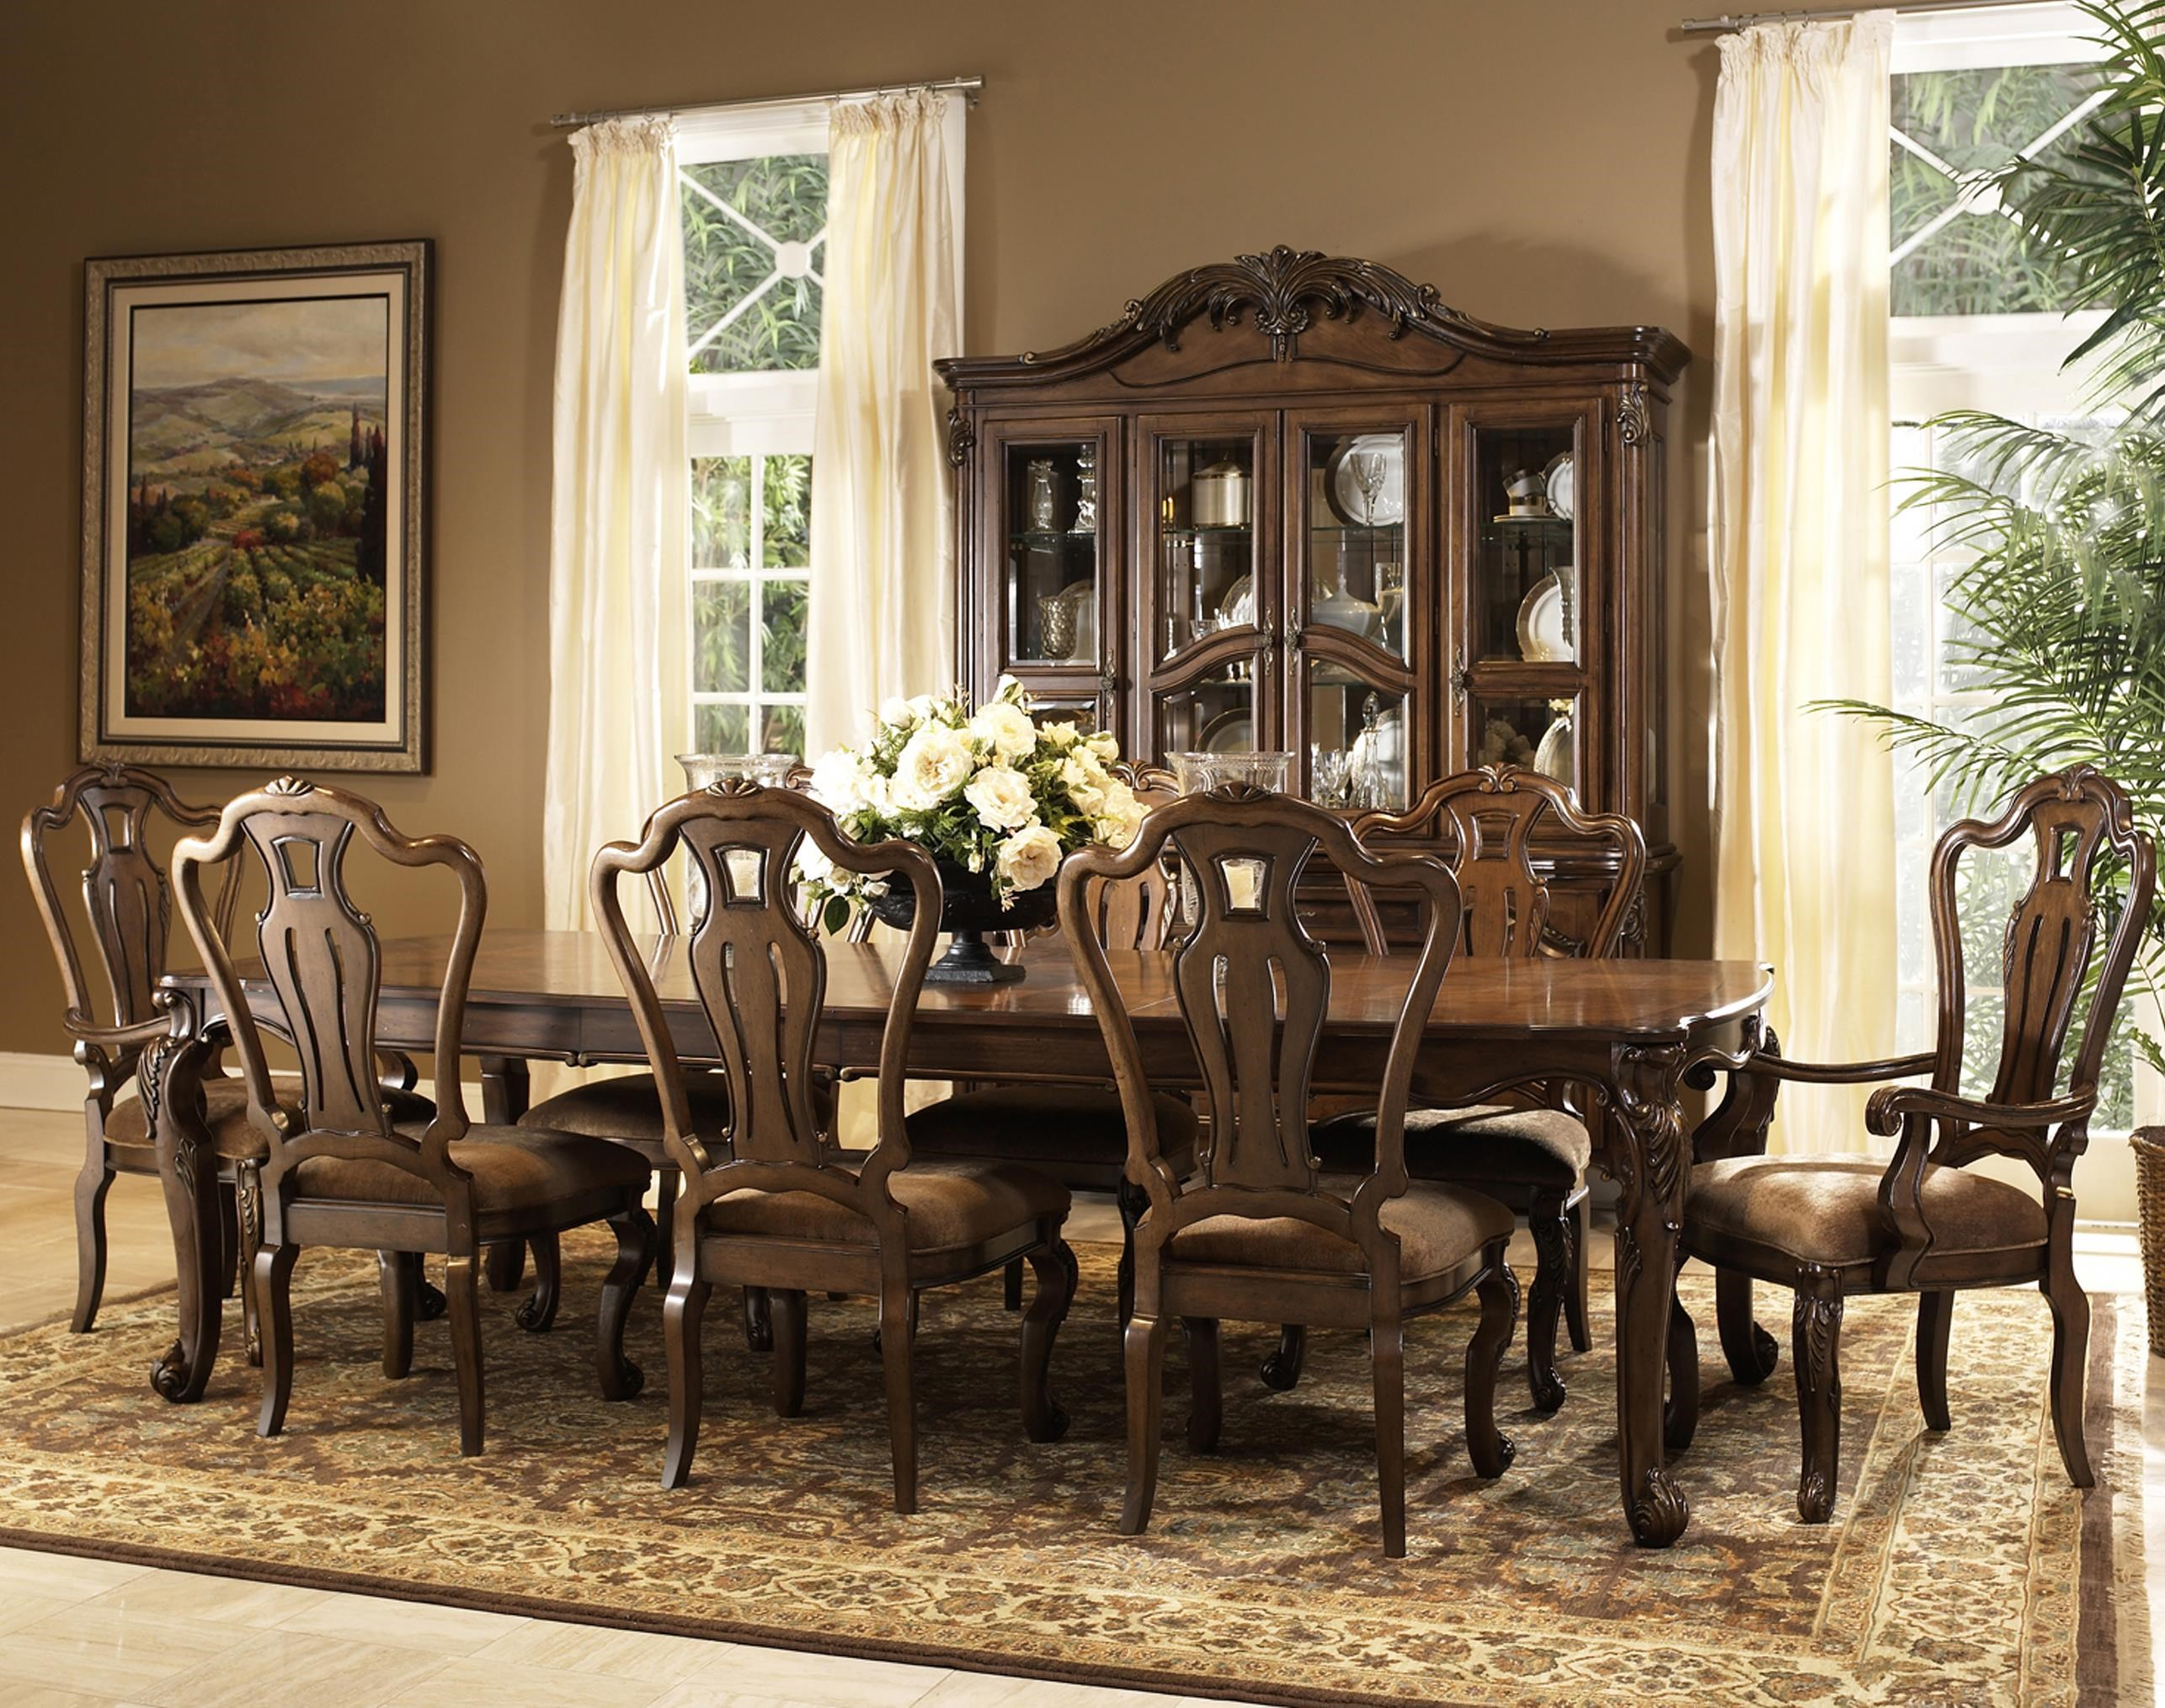 dining table and chair sets coors light with cooler fairmont designs rochelle 9 piece set dunk bright furniture 7 or more